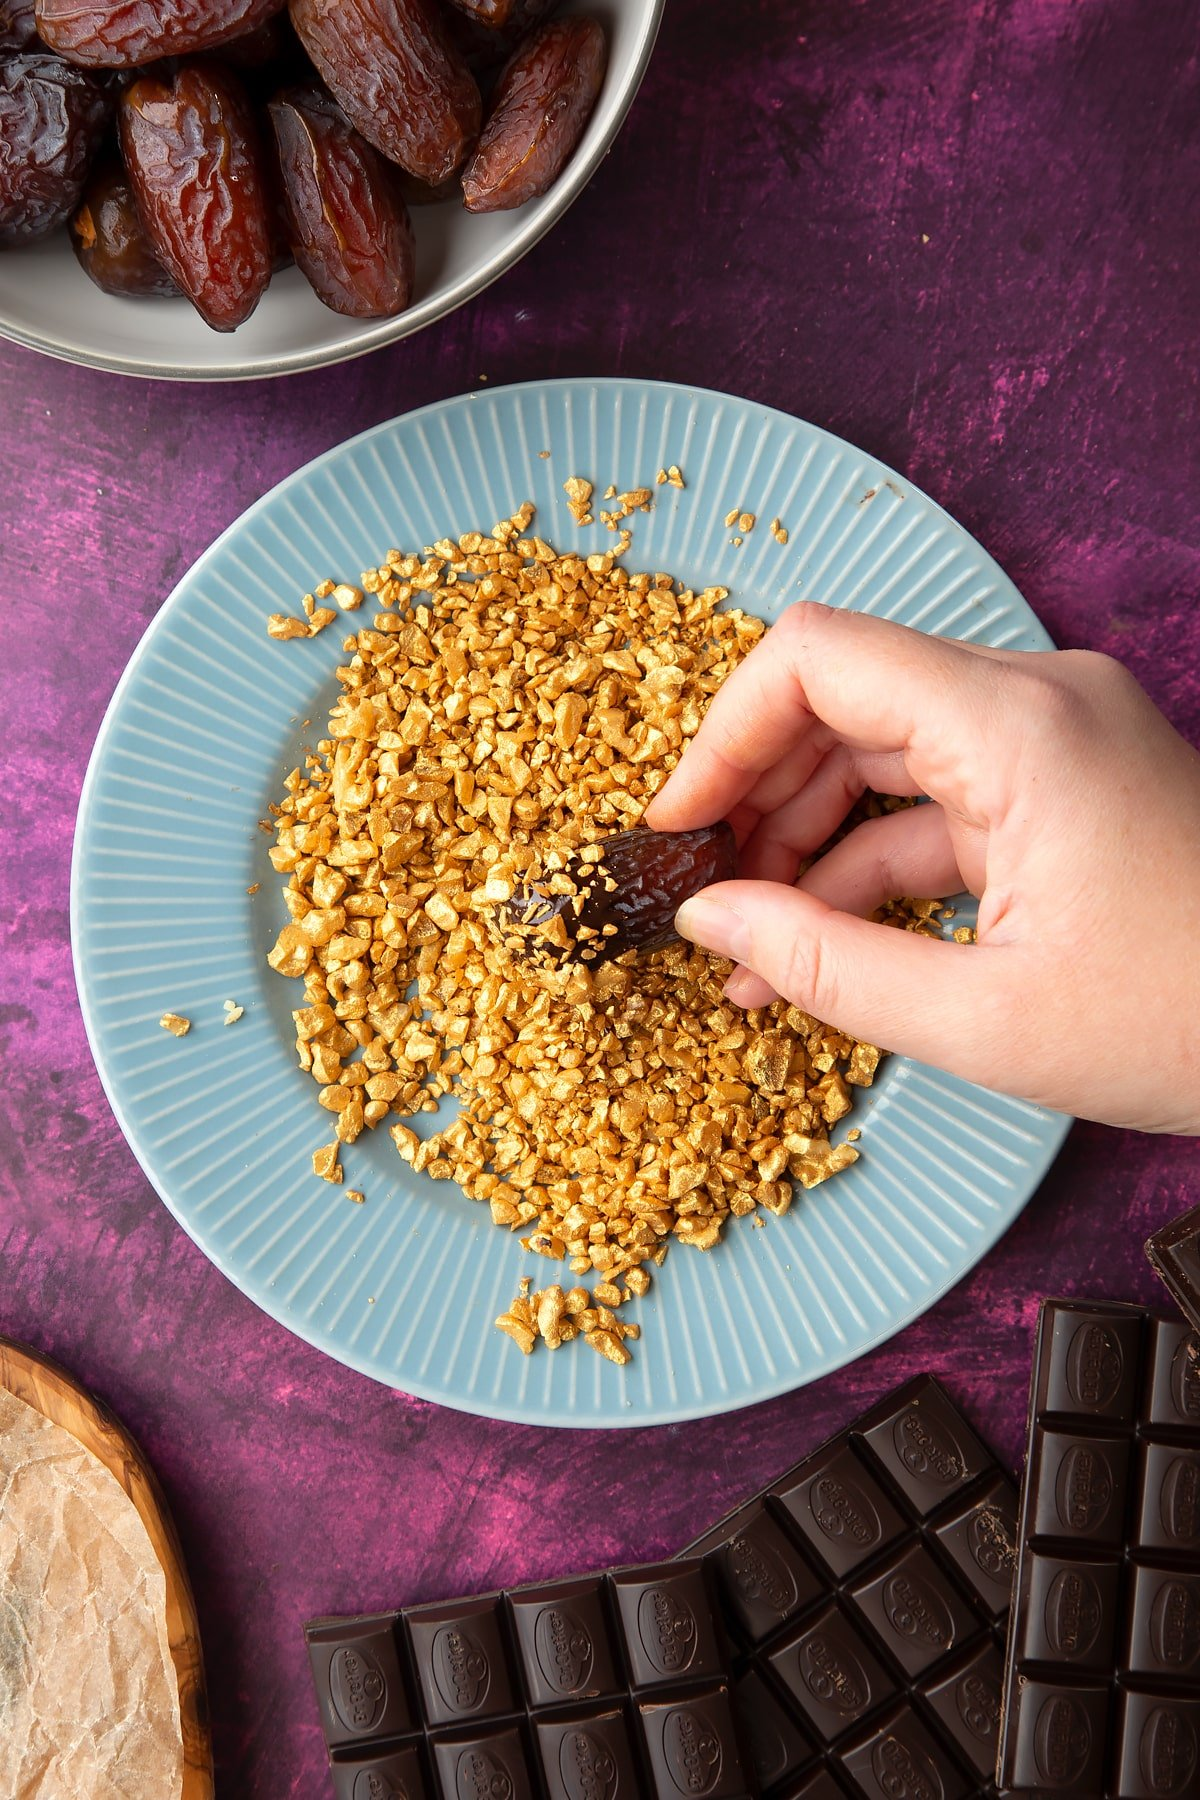 Chopped walnuts sprayed gold on a blue plate, surrounded by ingredients to make chocolate dates. A hand holds a chocolate and nut coated date.